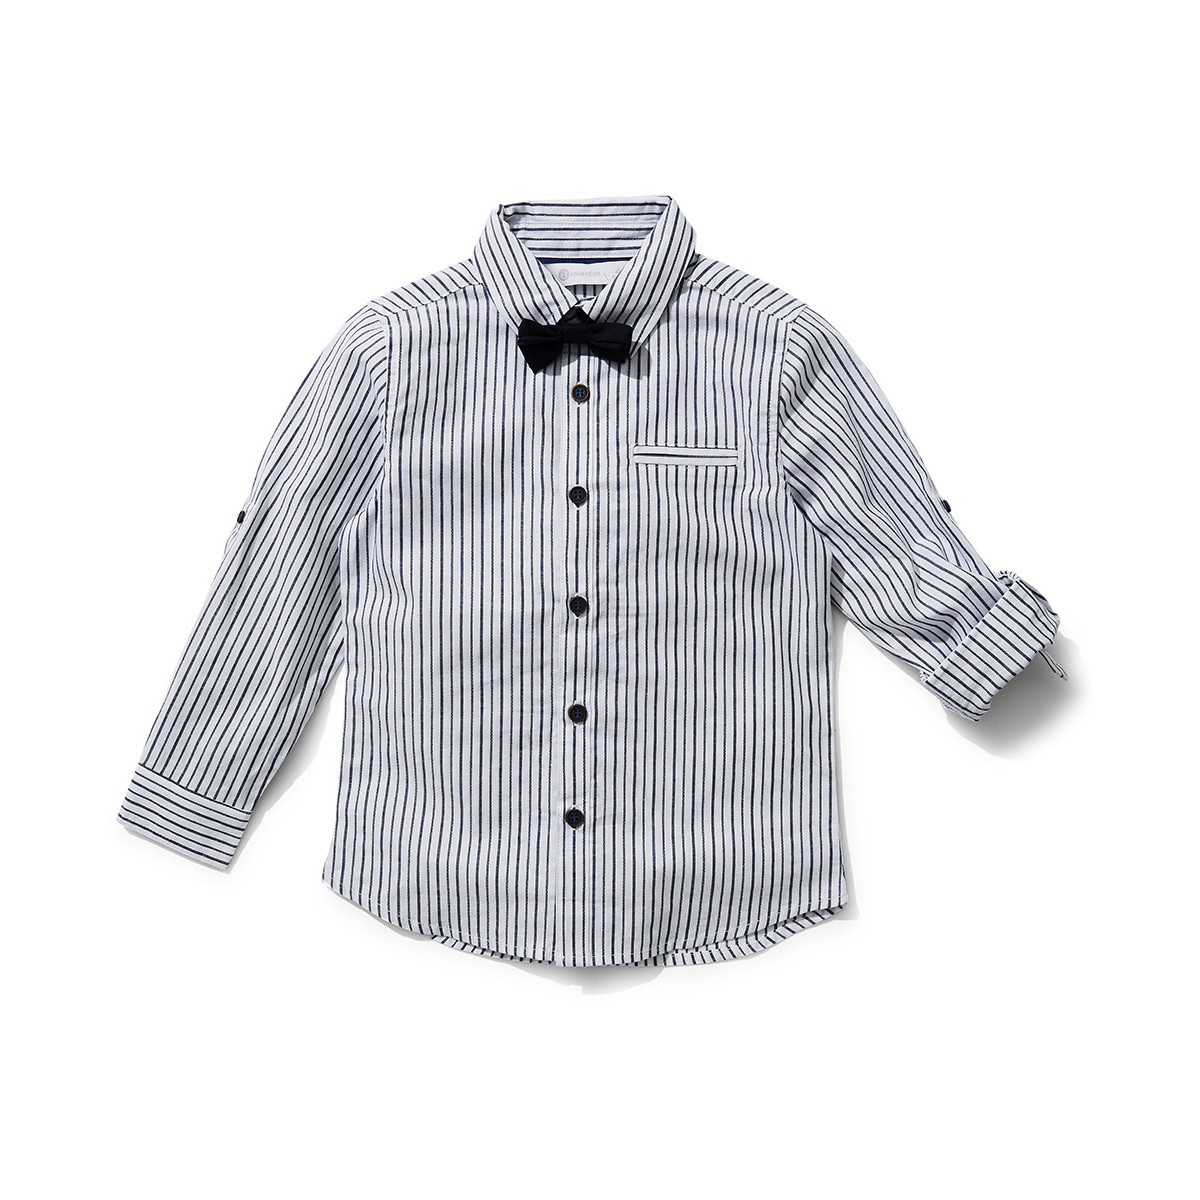 Big W Bow Tie B Collection Boys Bow Tie Shirt Navy Big W